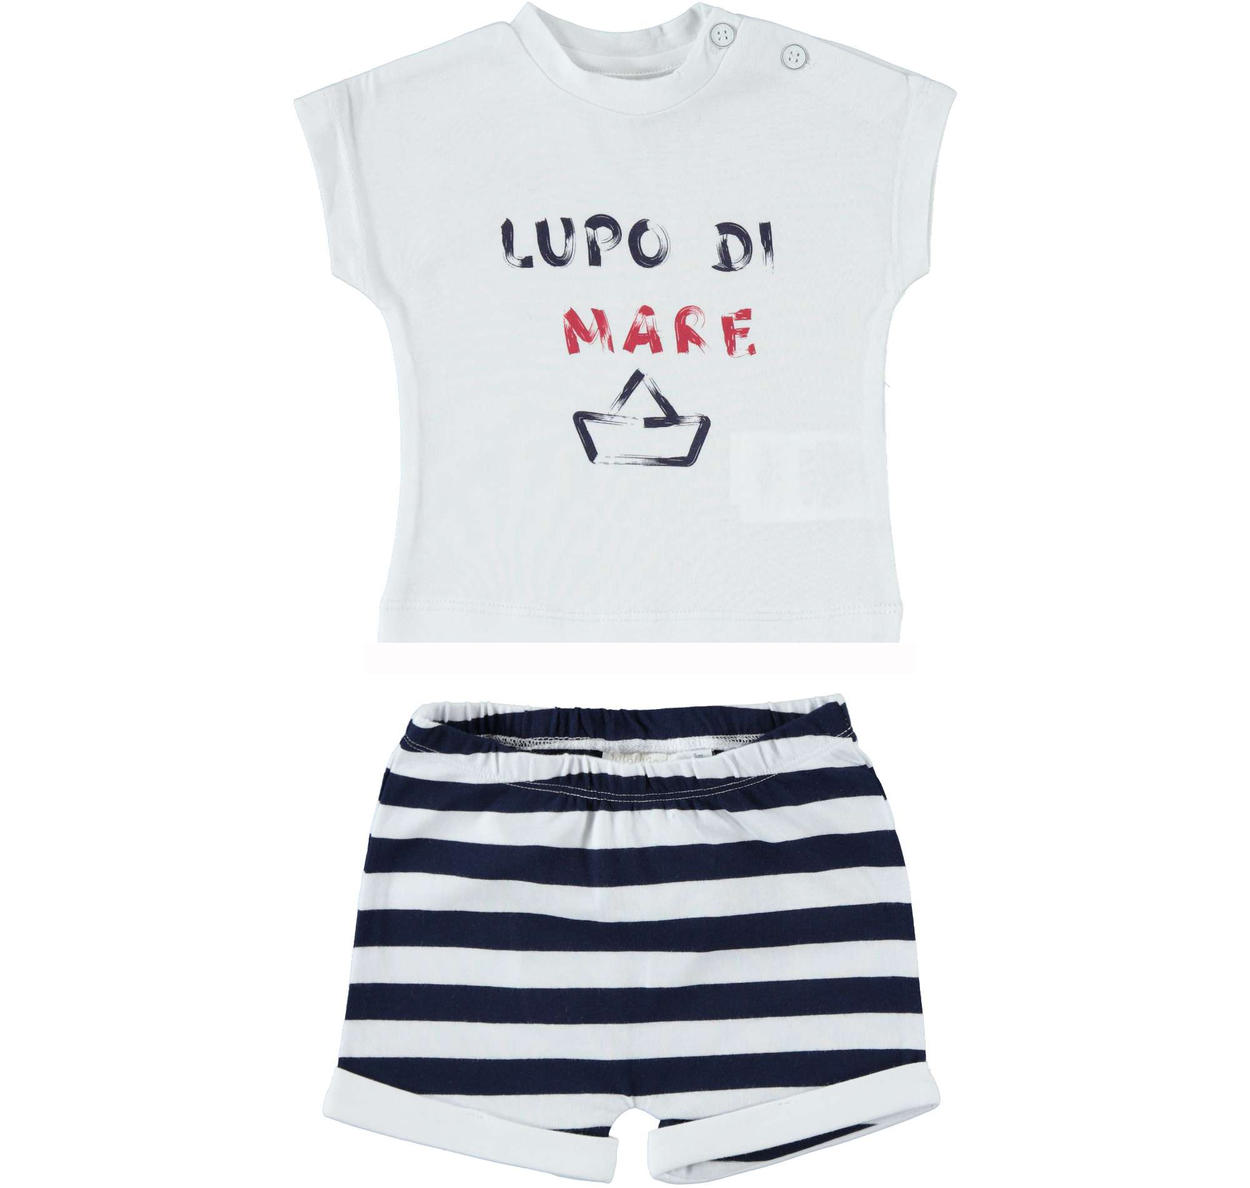 7e3cfe28e Summer two-piece outfit for baby boy in stretch cotton for newborn ...